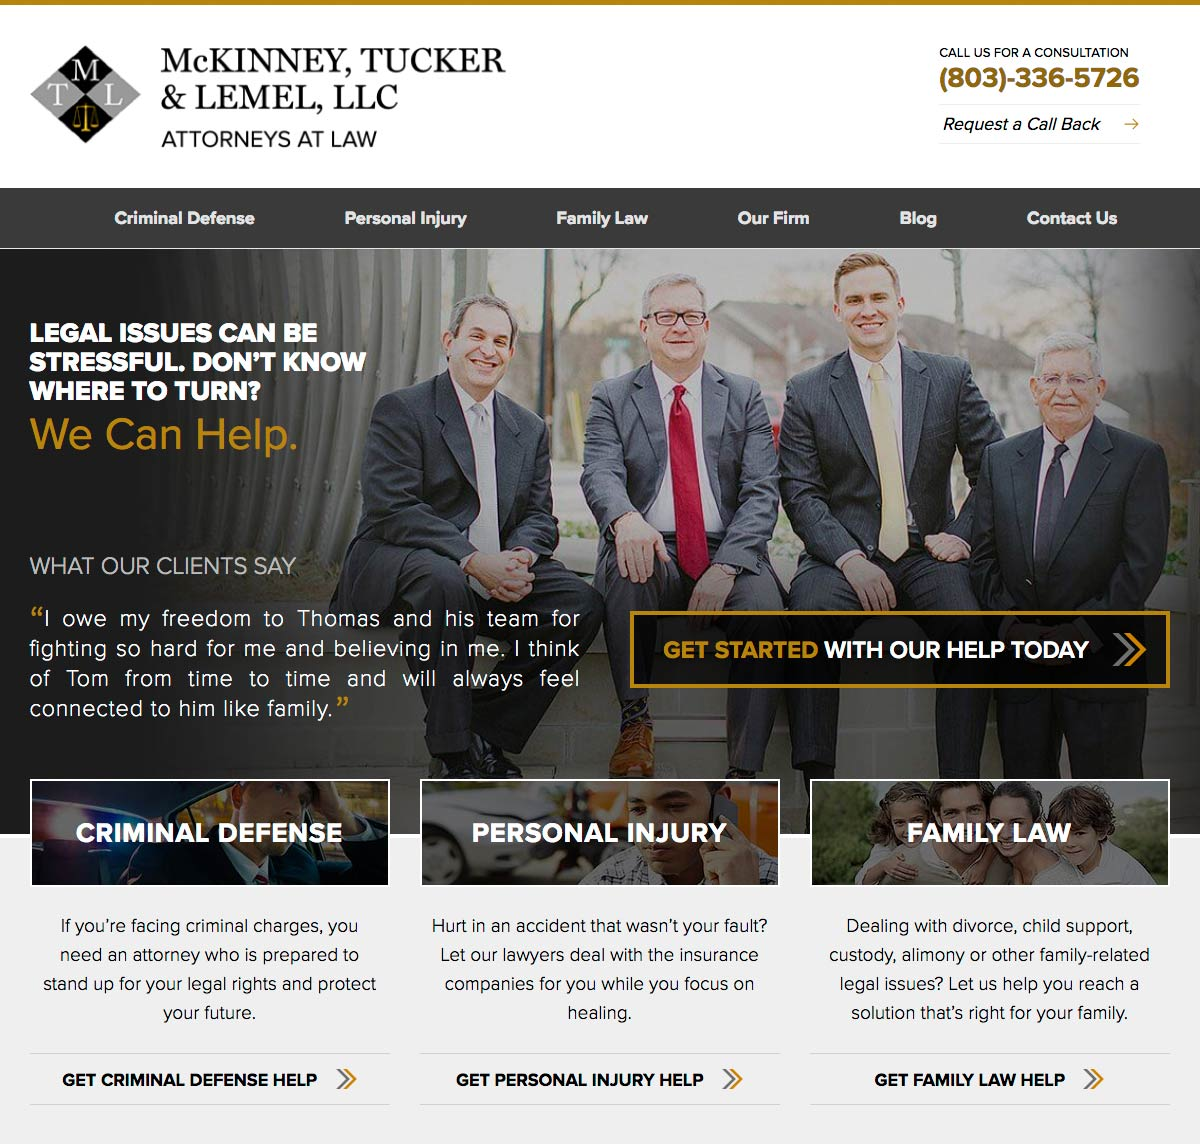 McKinney, Tucker, & Lemel Law Firm